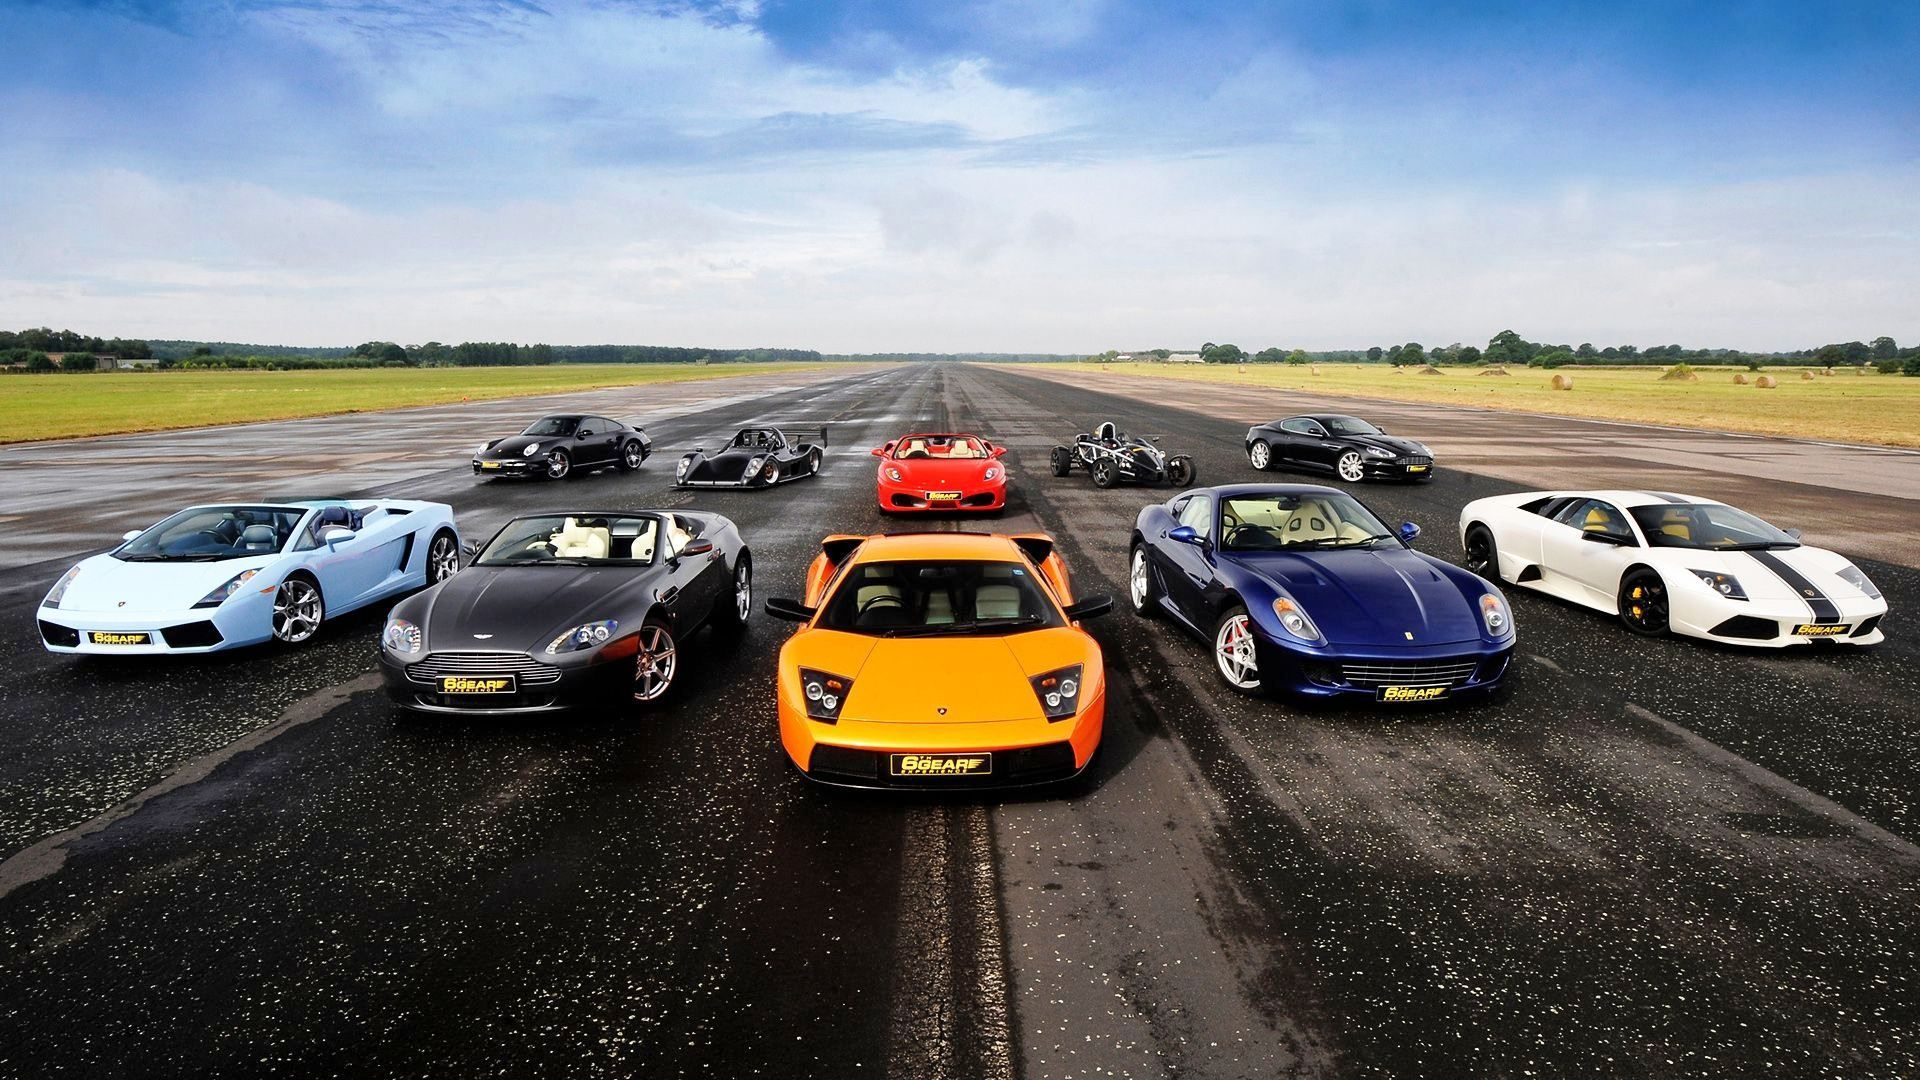 Sport Car All Hd Pictures Free Hd Wallpaper Sports Car Wallpaper Hd Wallpapers Of Cars New Sports Cars